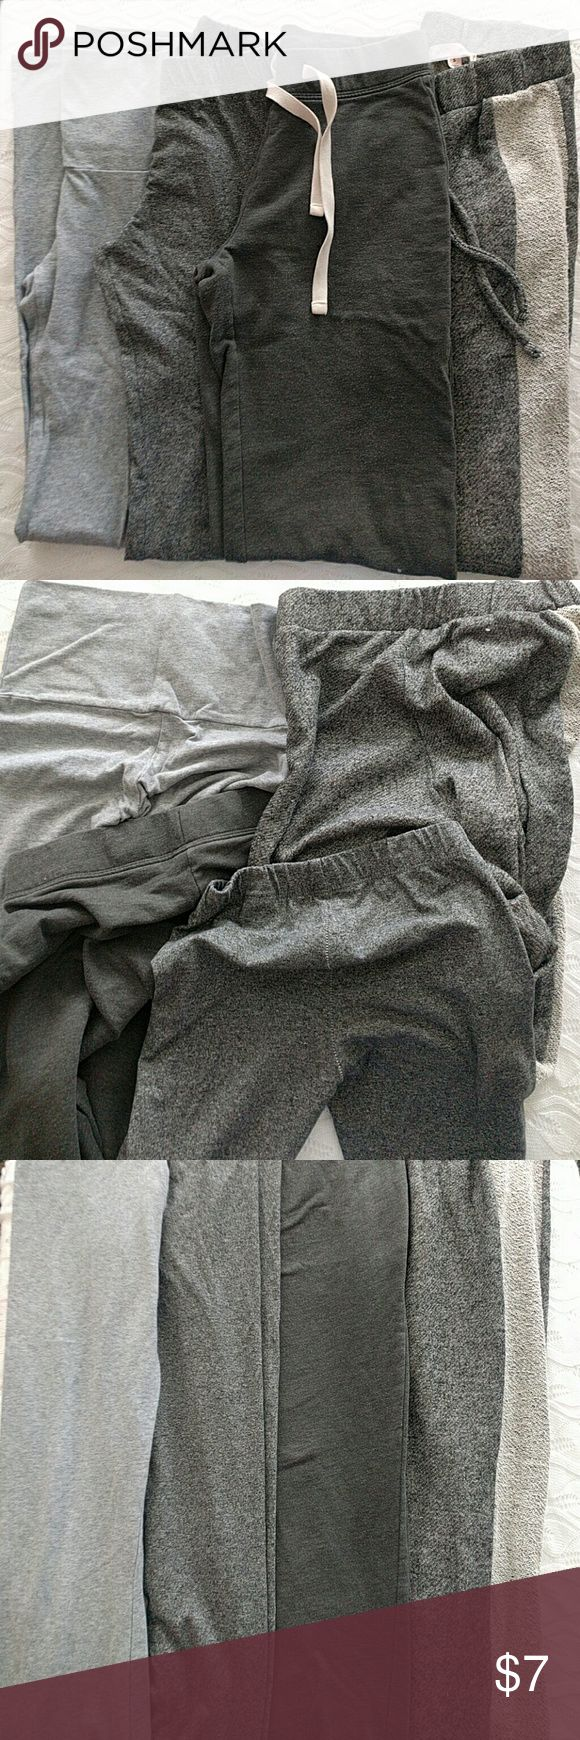 H&M Gray Lounge Bundle of Four Size XS Small Two pairs of joggers, H&M - Wish & Whim (hit ankle for 5'3) One pair Imagenation super stretch yoga (lightest gray) One pair H&M leggings  All were wore and washed once. I have favorite pairs of lounge that I wear on repeat so these are still in great condition. Two XS & Two Small but waist measurements are similar besides leggings of course. See last picture for this comparison H&M Pants Track Pants & Joggers